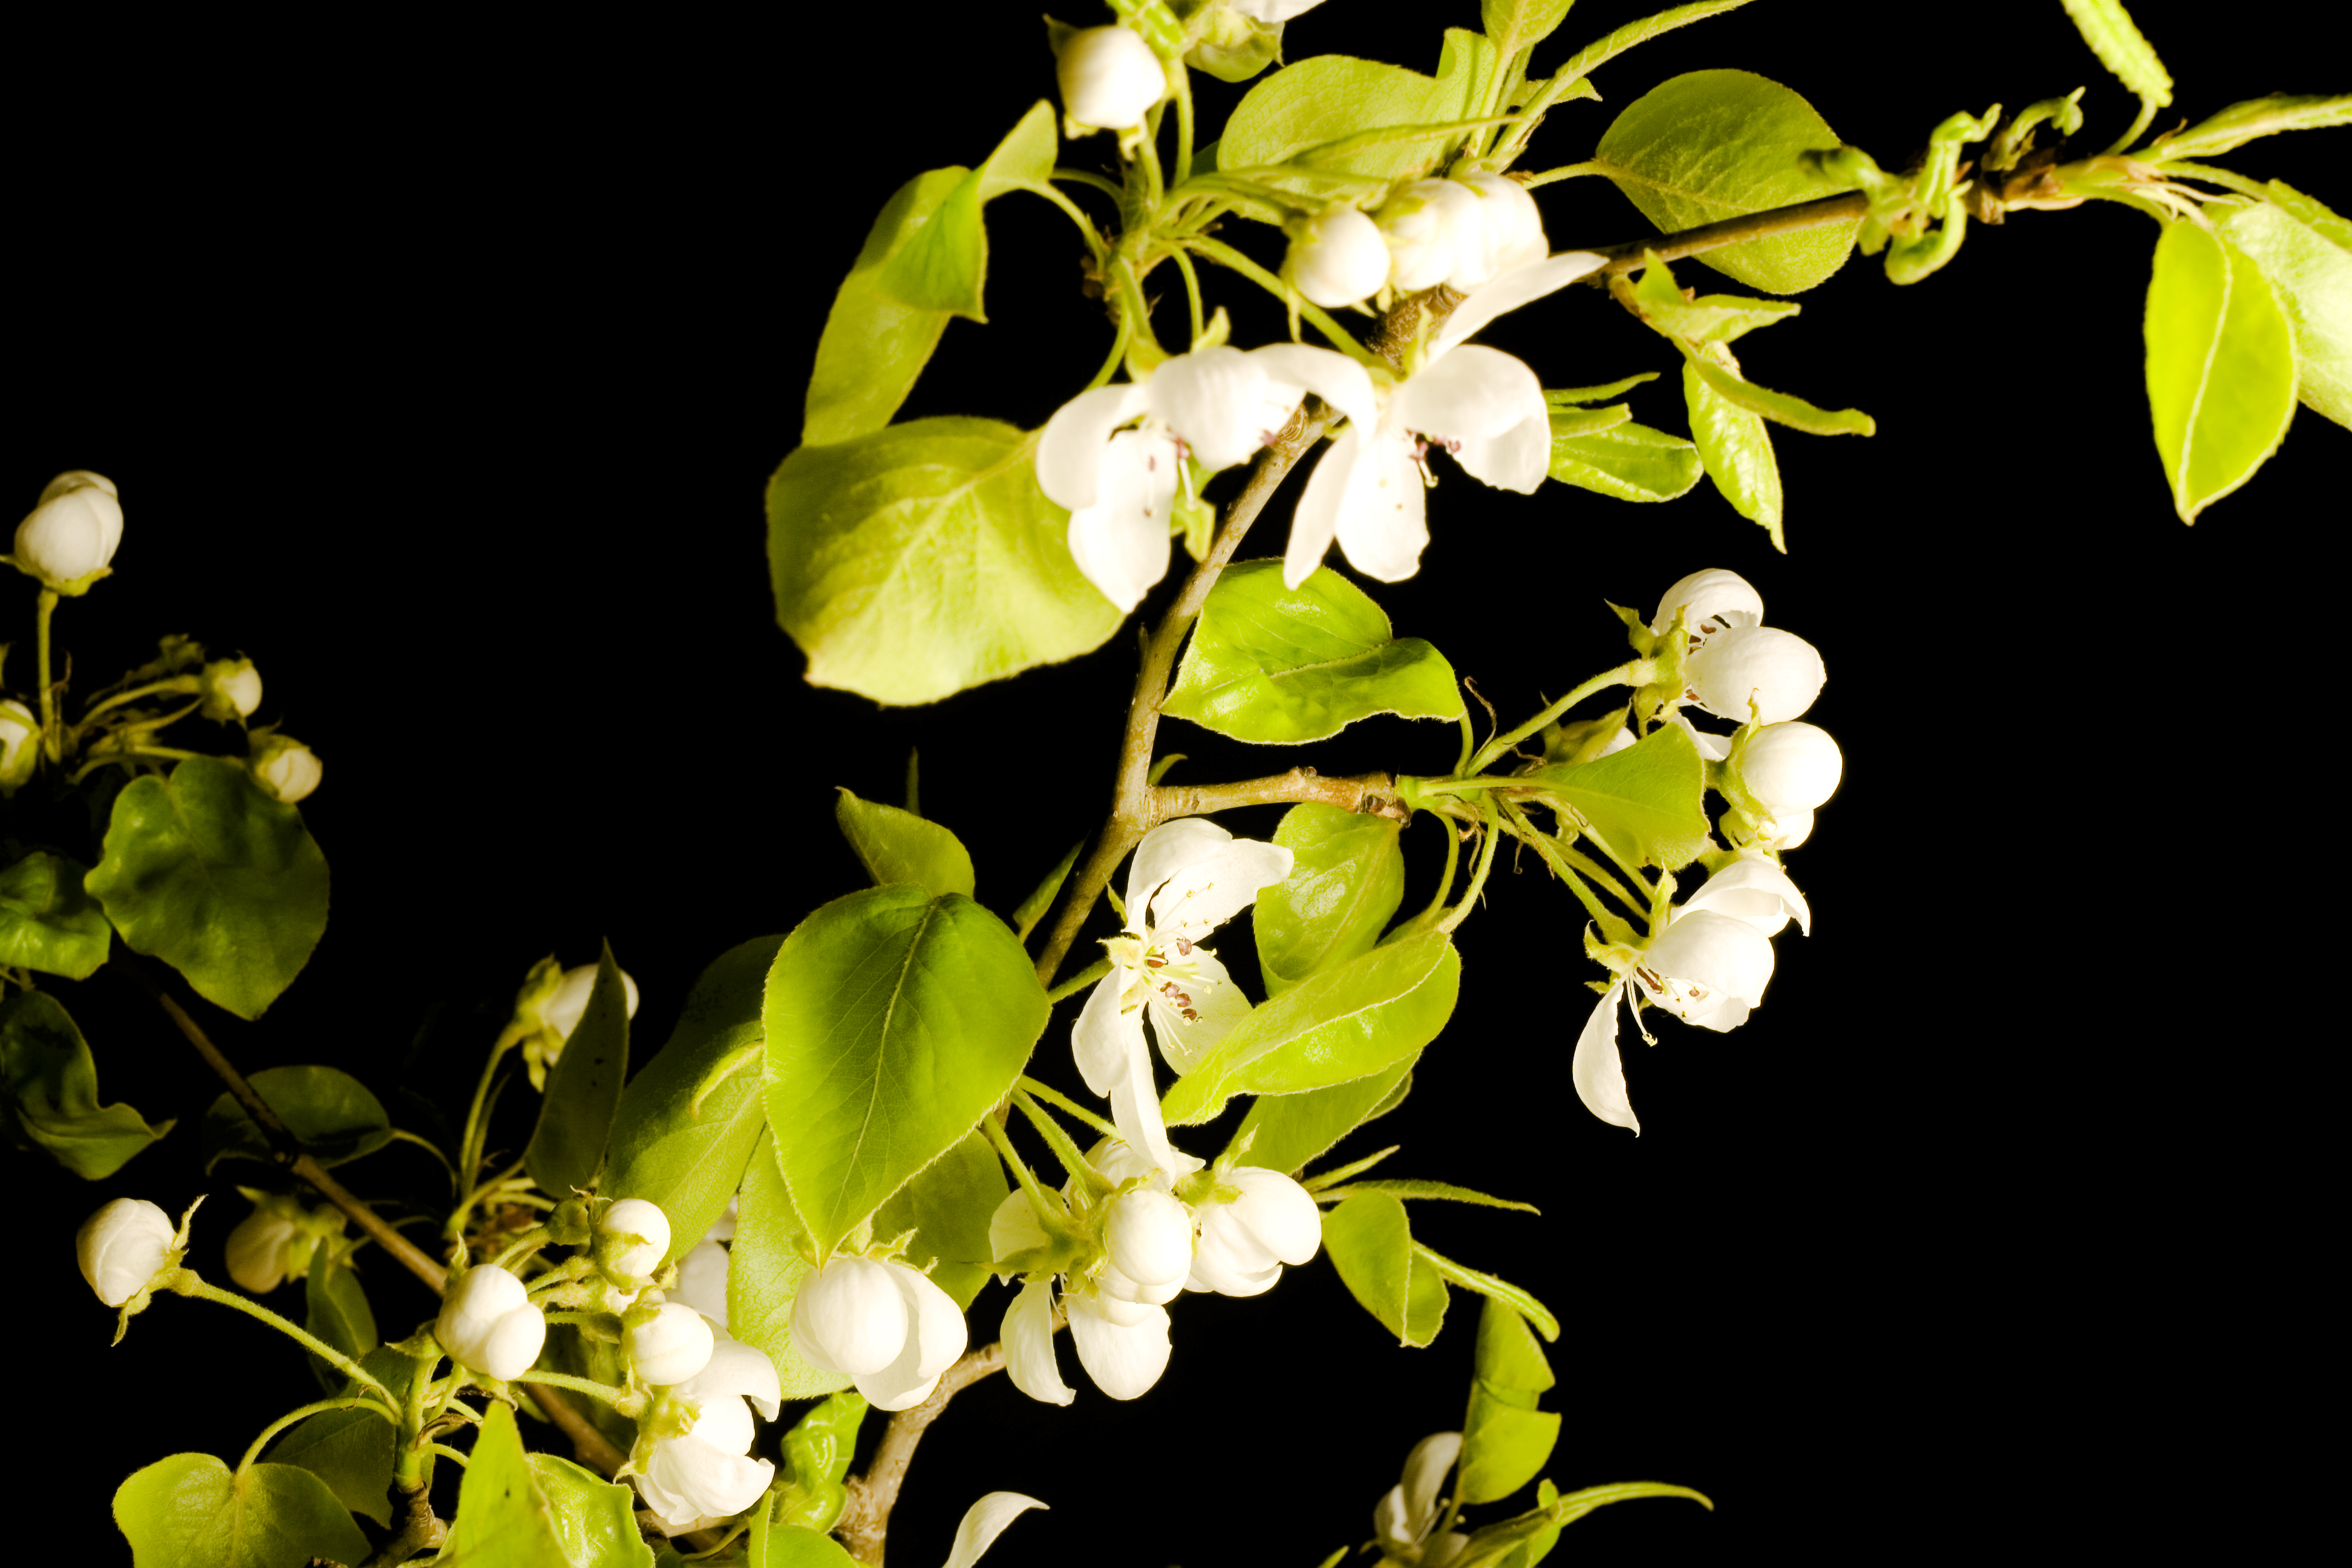 White Flower and Green Leaves, Beautiful, Con2011, Flower, Green, HQ Photo